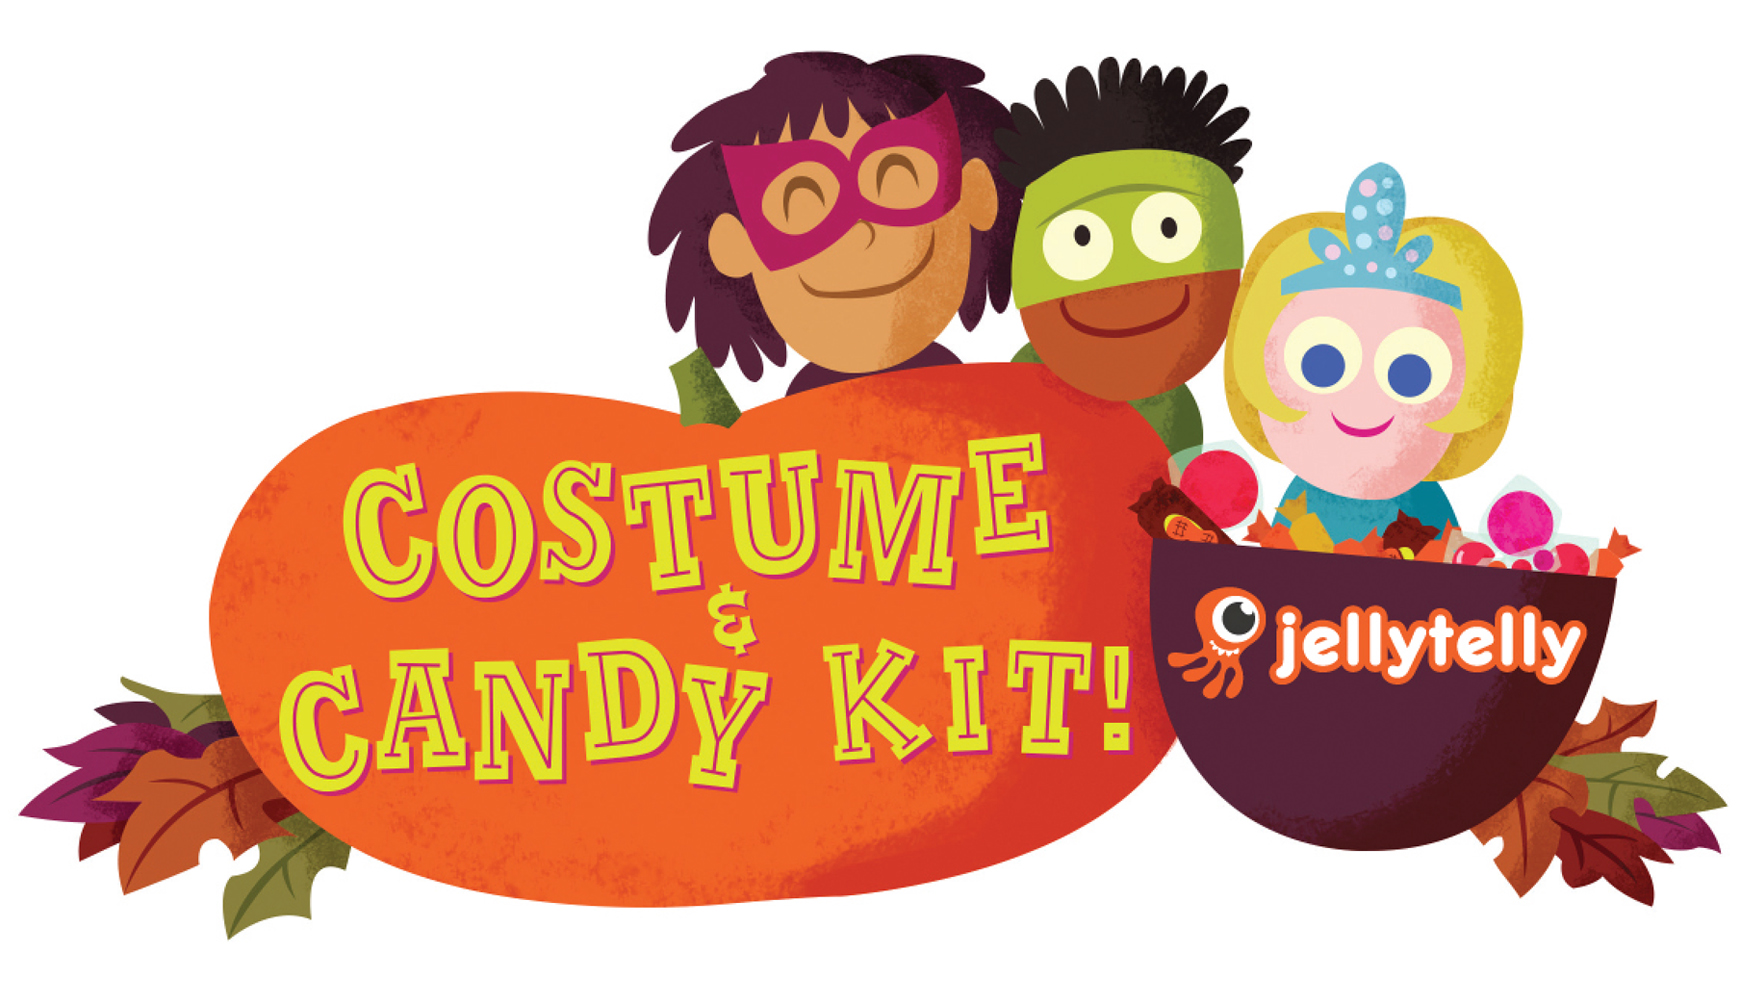 Costume and Candy Kit